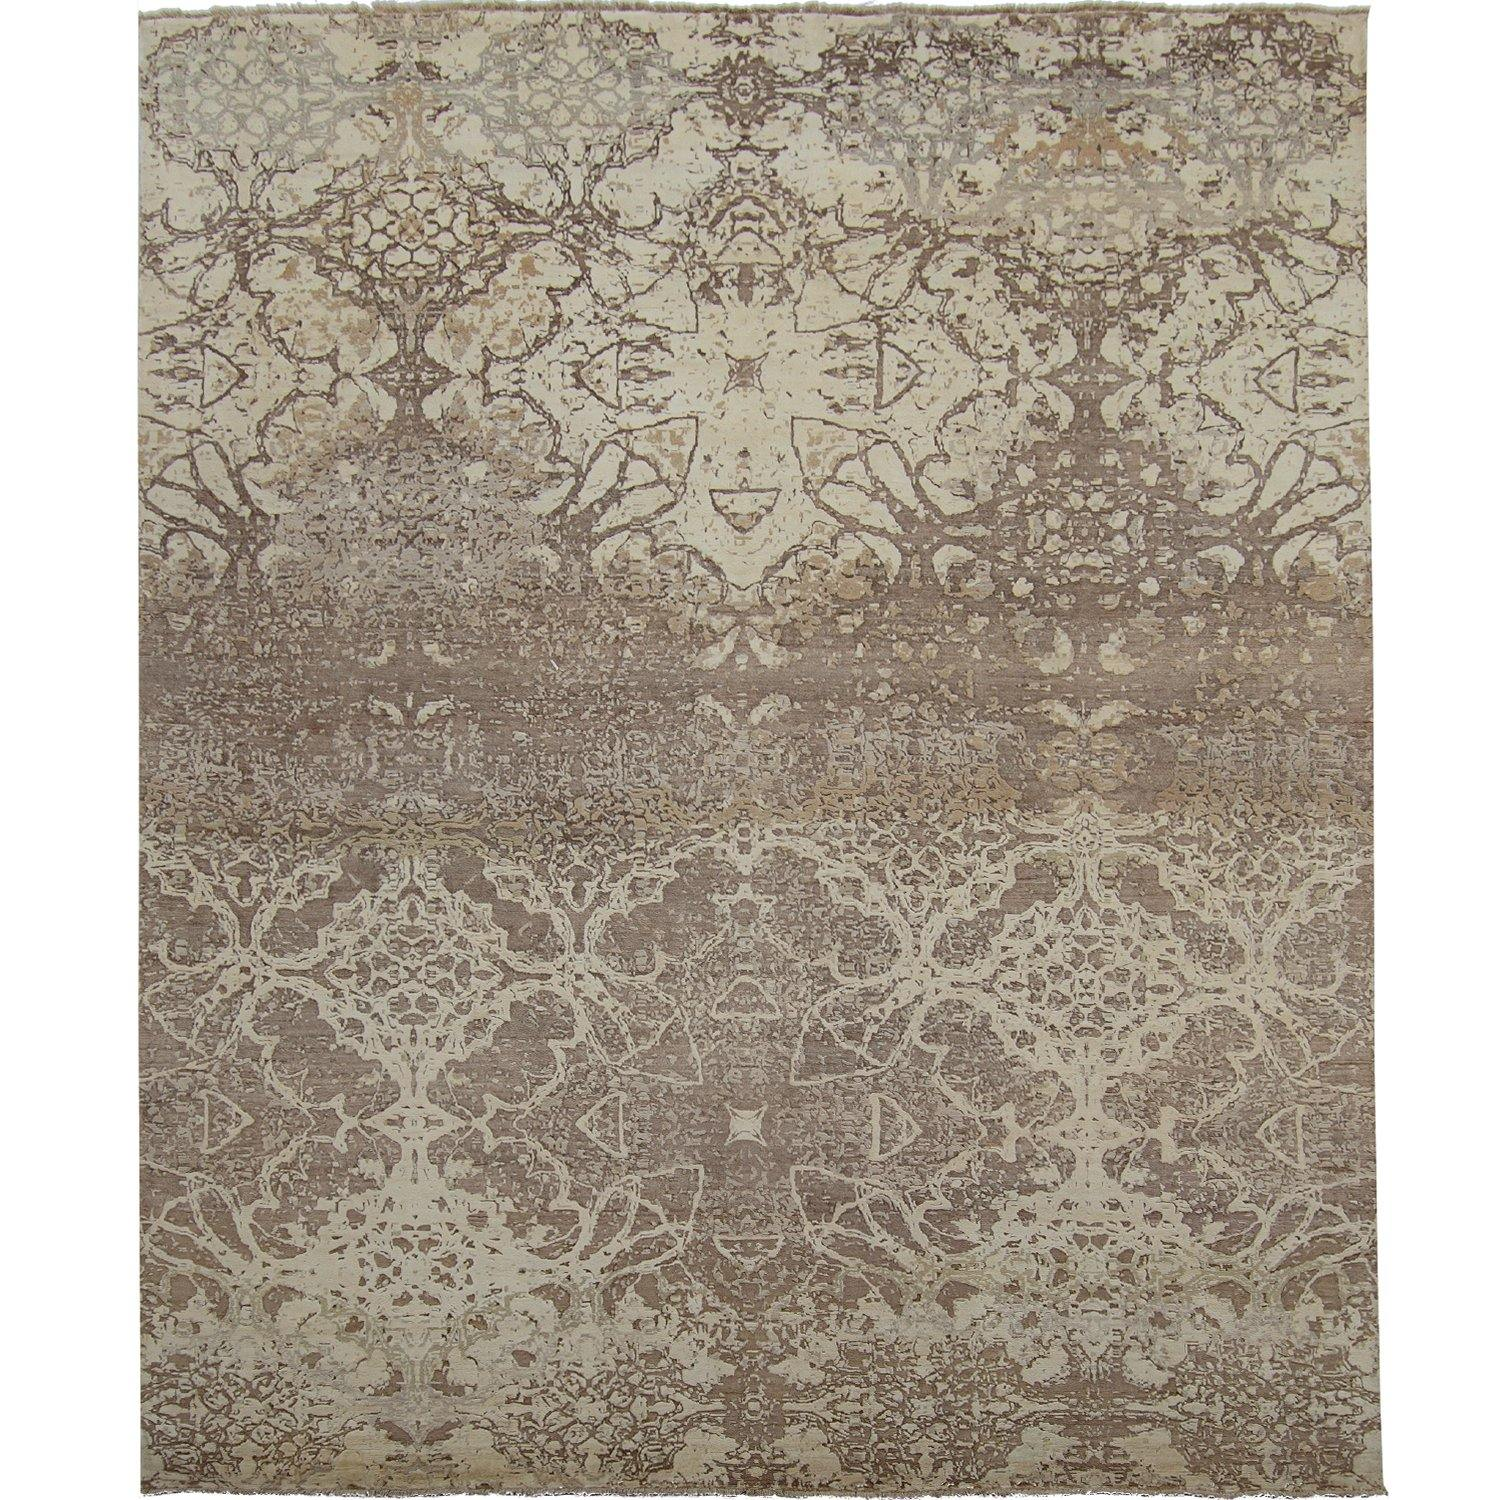 Fine Contemporary Hand-knotted NZ Wool Rug 308cm x 427cm Persian-Rug | House-of-Haghi | NewMarket | Auckland | NZ | Handmade Persian Rugs | Hand Knotted Persian Rugs